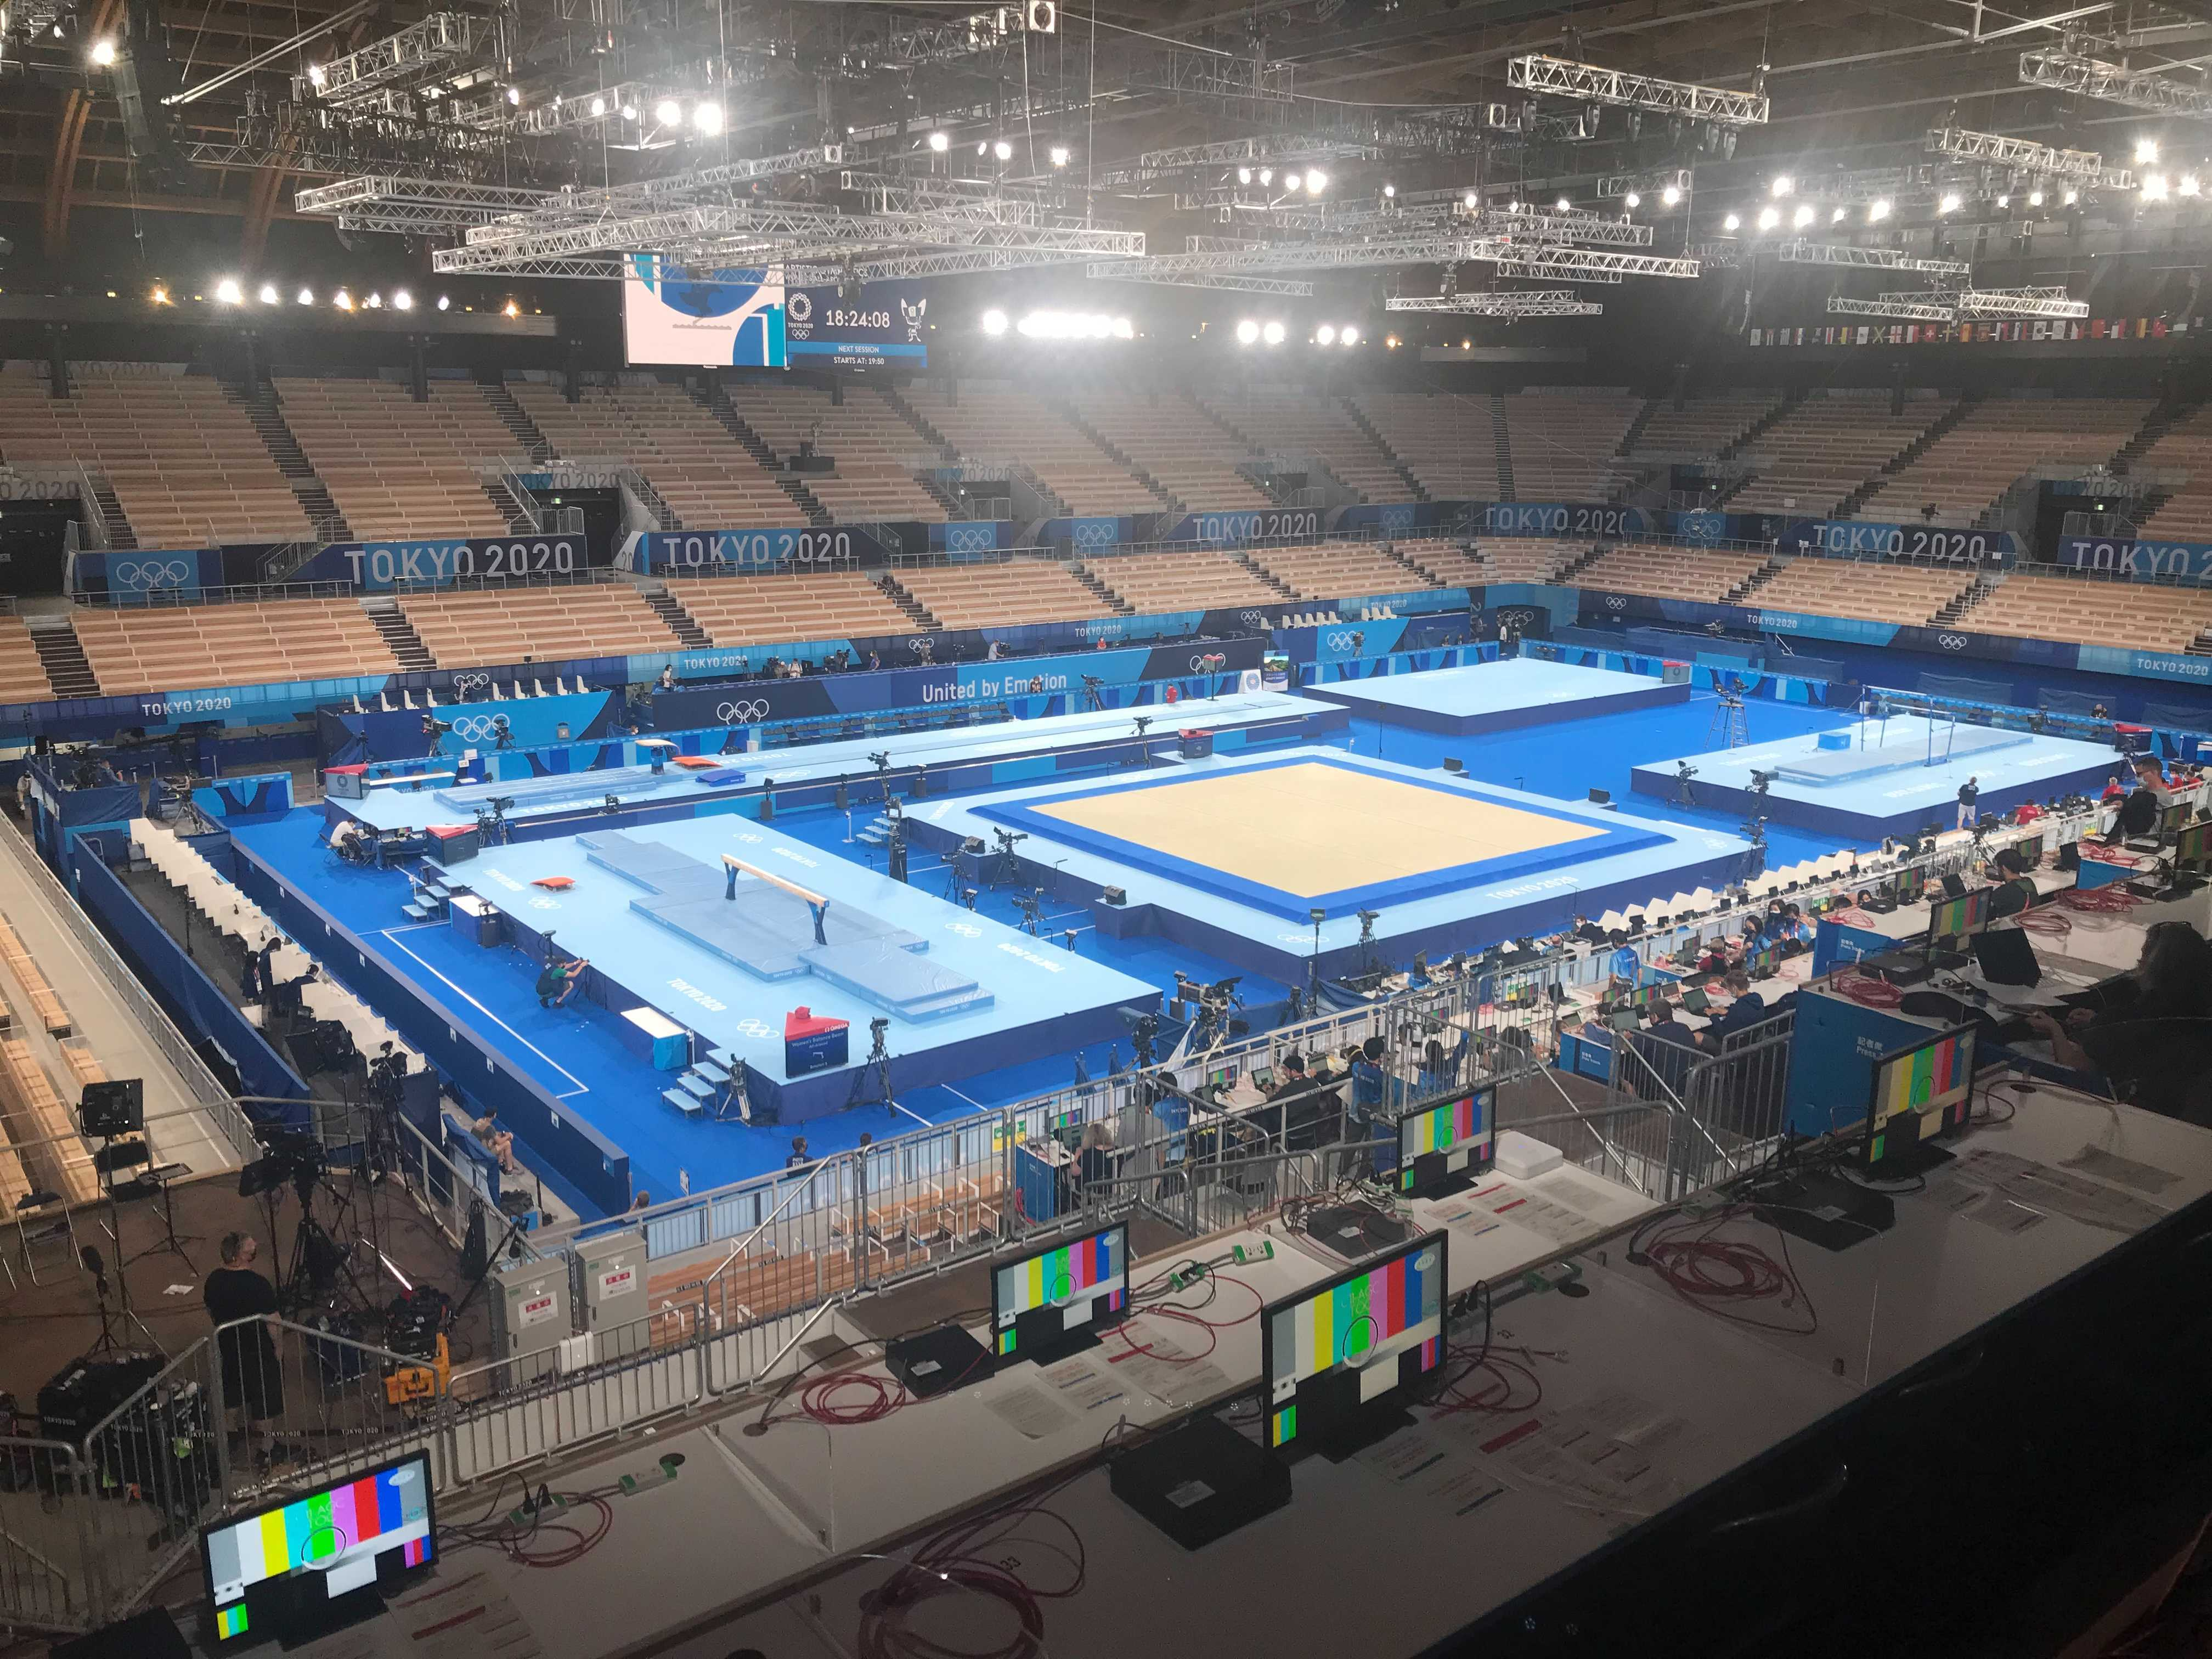 The Ariake Gymnastics Centre is pictured ahead of the women's all-around gymnastics final on Thursday, July 29.